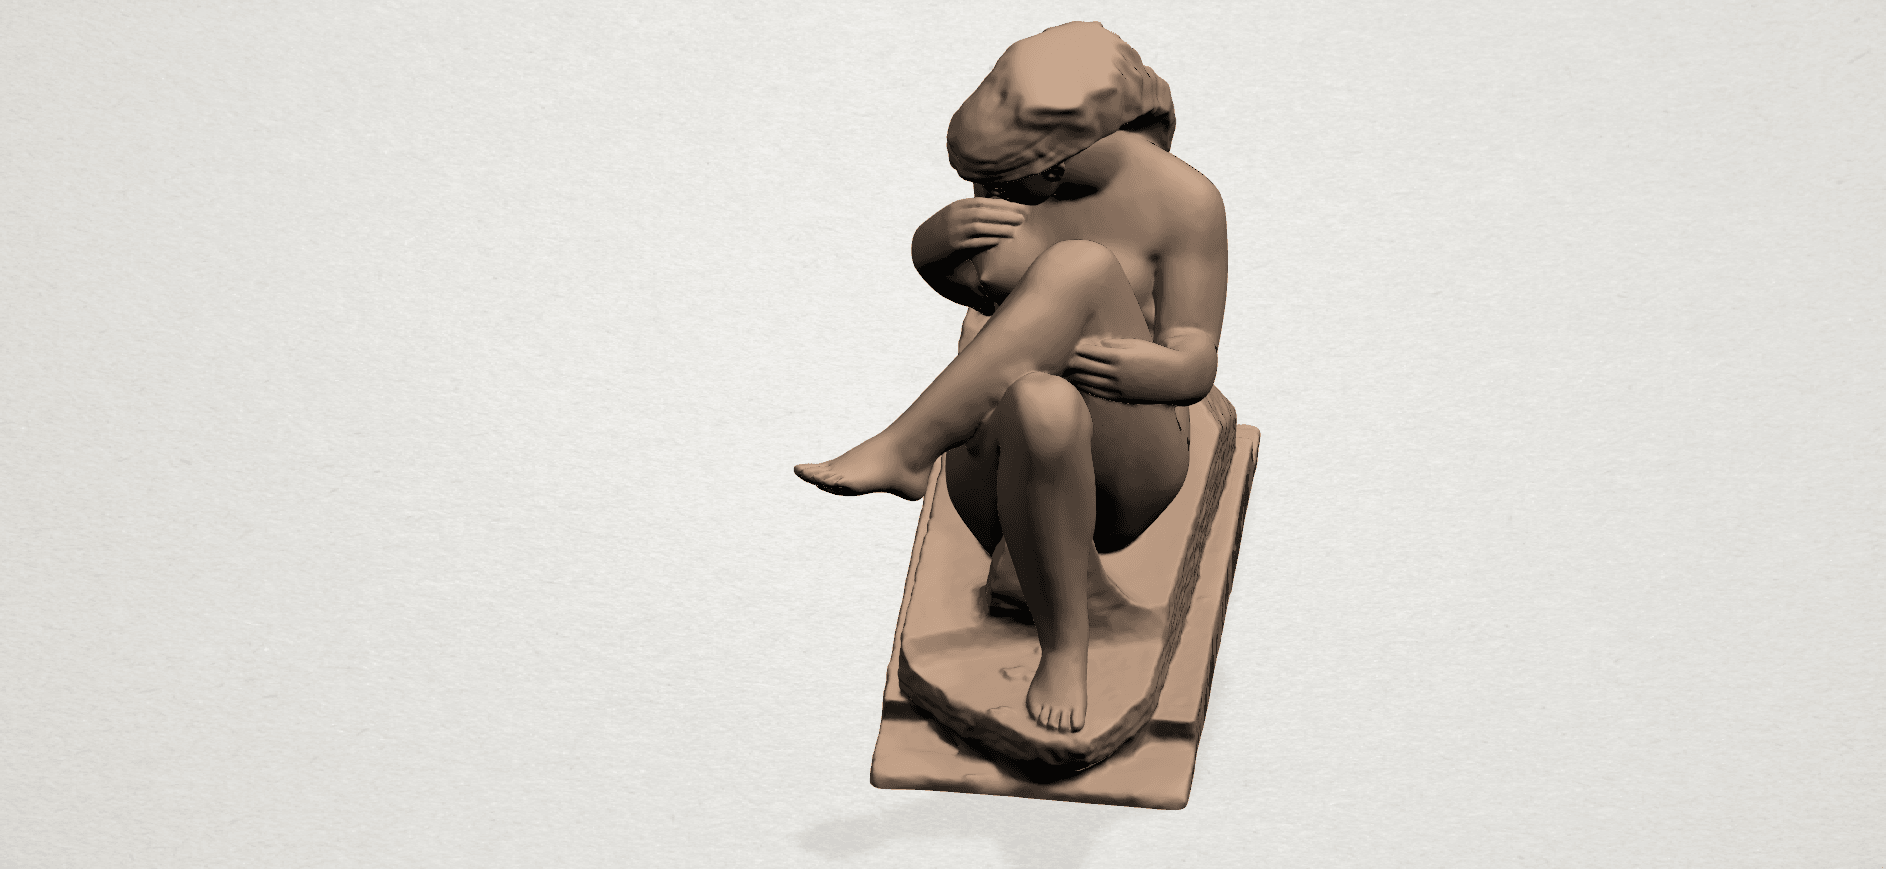 Naked Girl (xiii) A07.png Download free STL file Naked Girl 13 • 3D print design, GeorgesNikkei